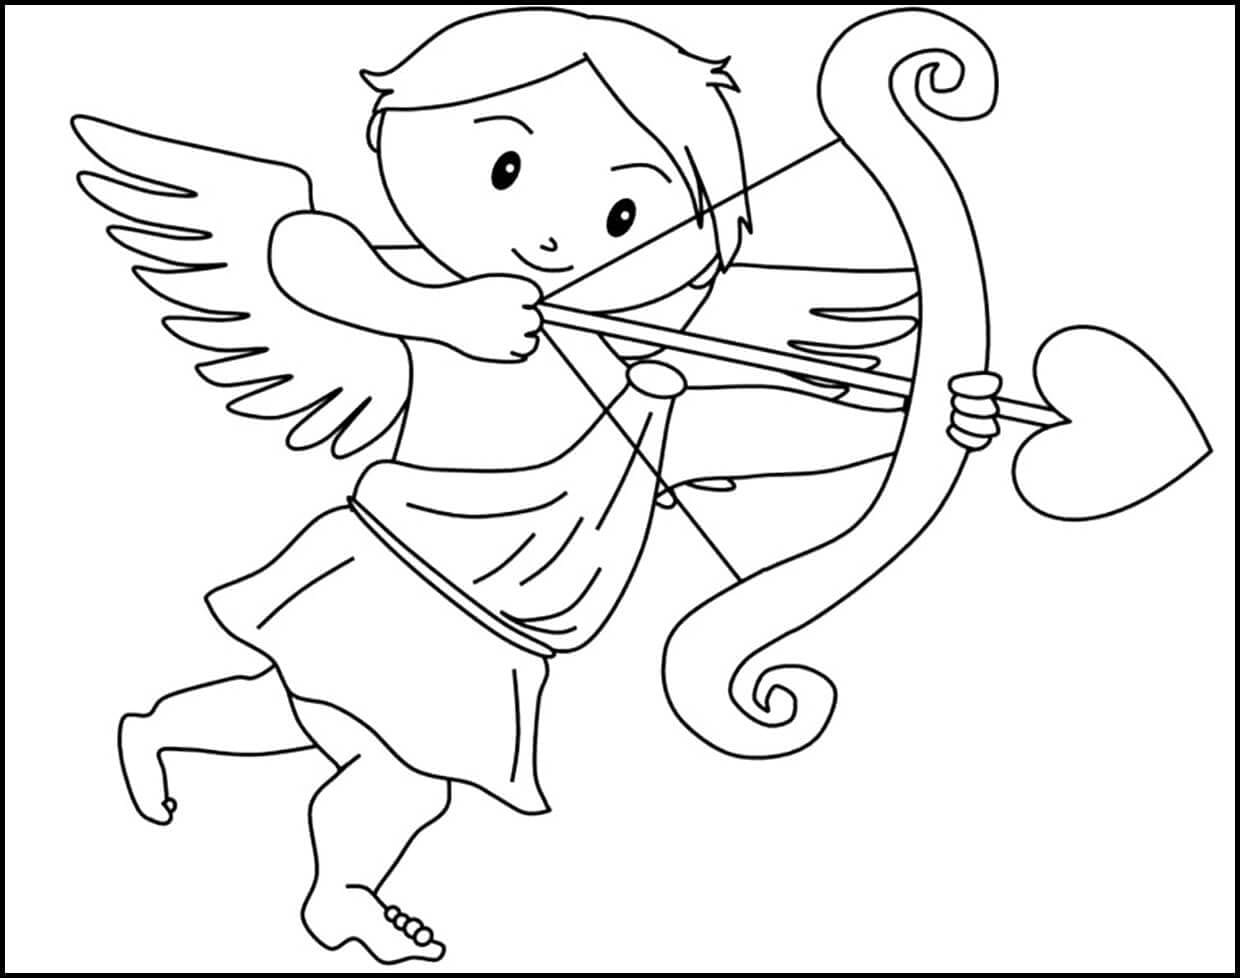 Coloring Cupid shoots an arrow of love